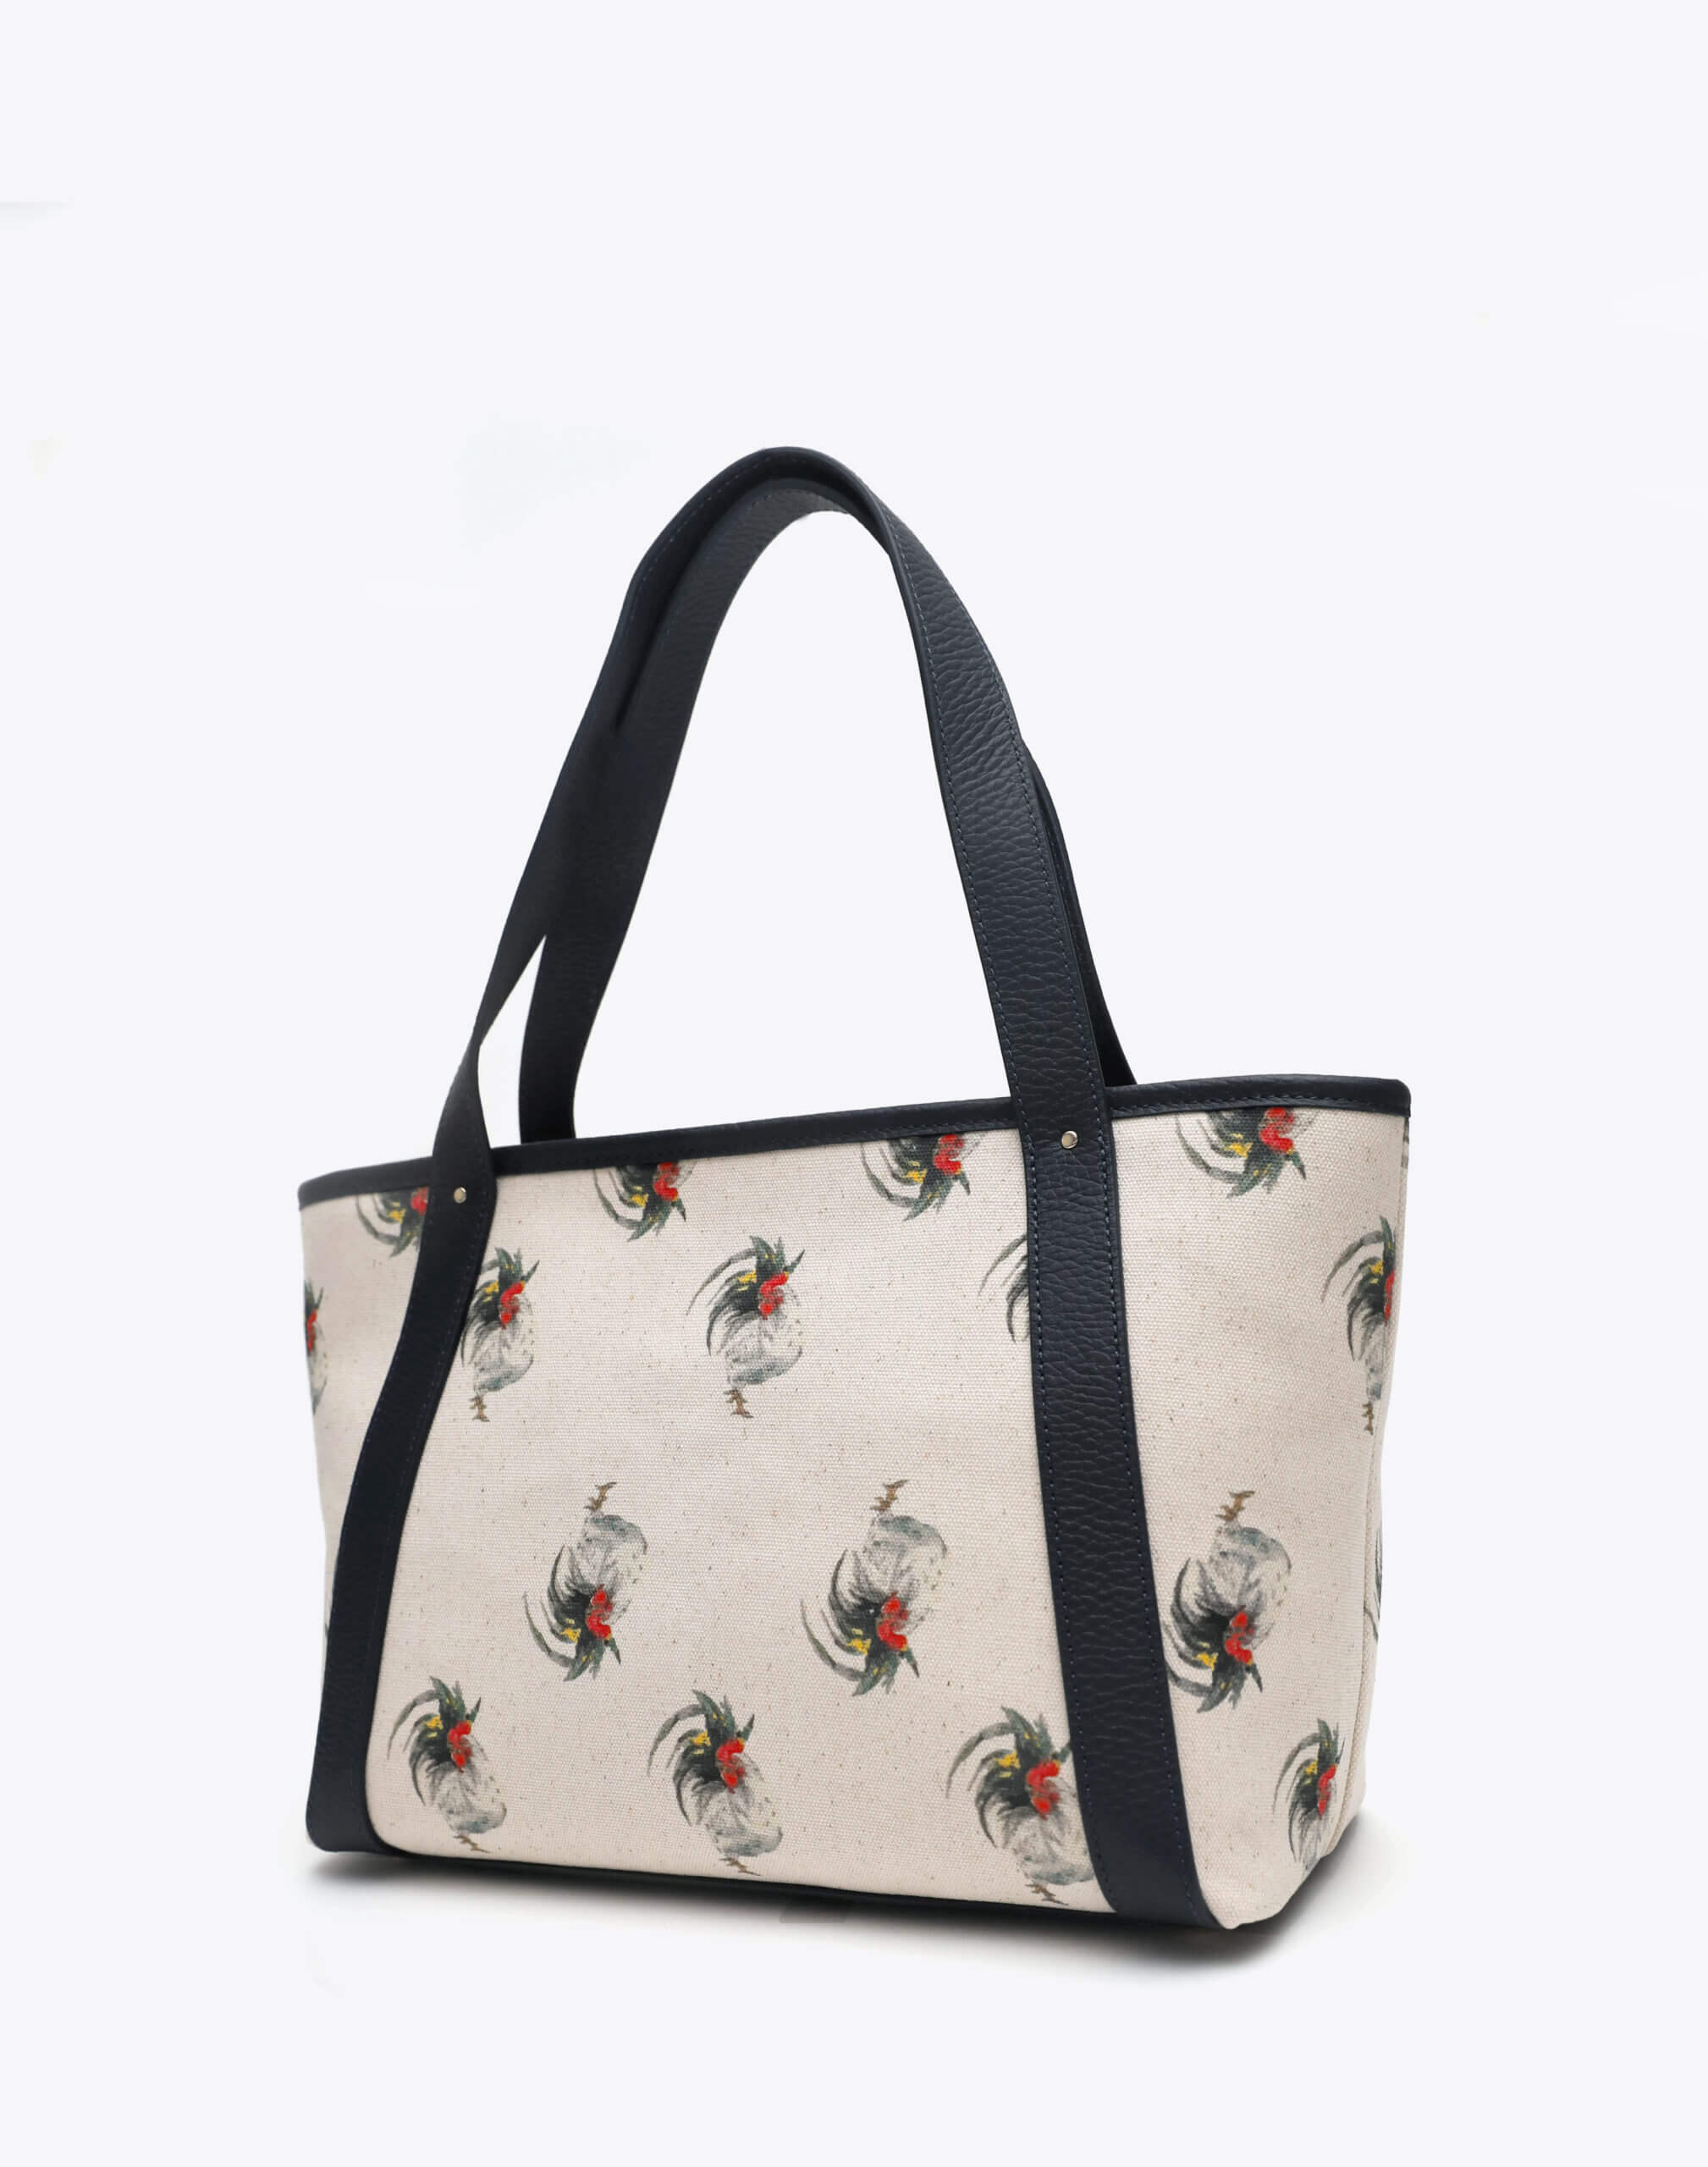 Neely and Chloe Chicken Print Travel Tote Angle View Black